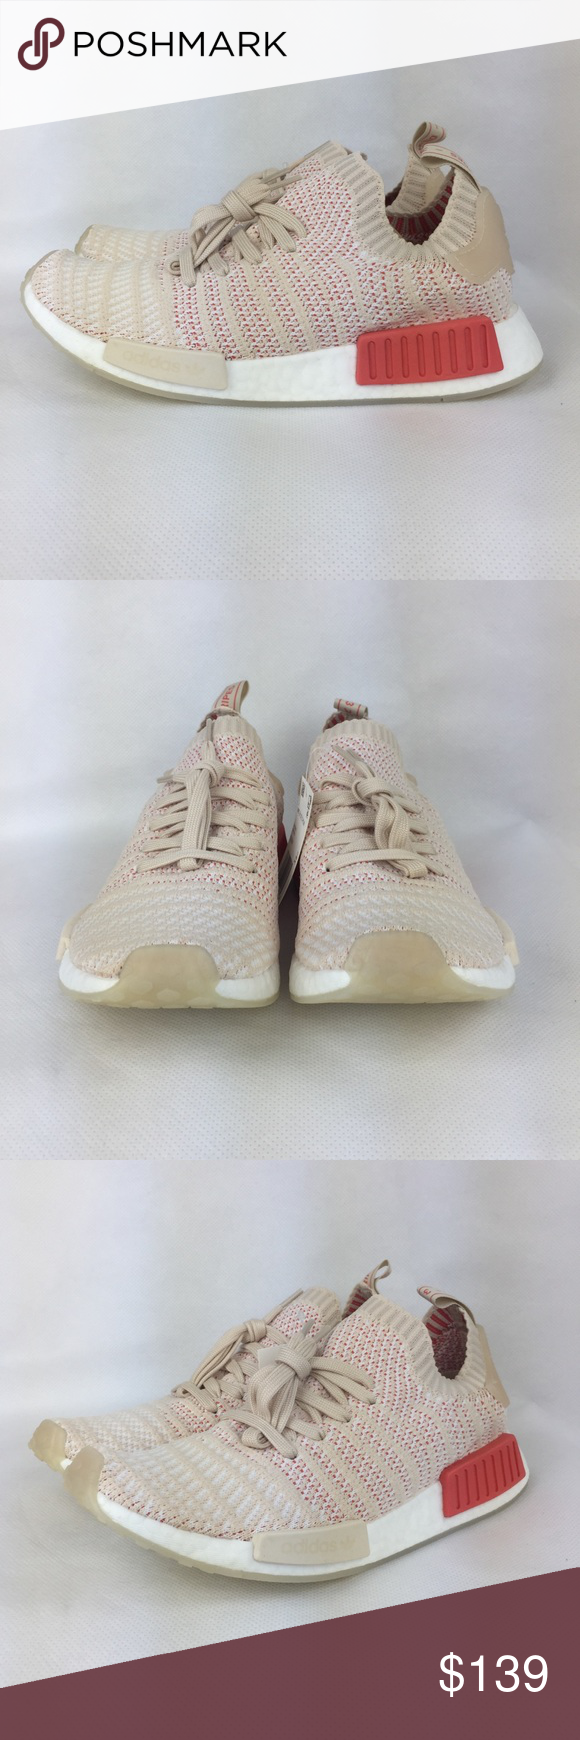 b910e67f144358 Adidas NMD R1 STLT Primeknit Pink Sneakers Adidas NMD R1 STLT Primeknit  Sneakers -Womens Size 9 -Pink -Brand New in Box with with tags Attached. - Last ...